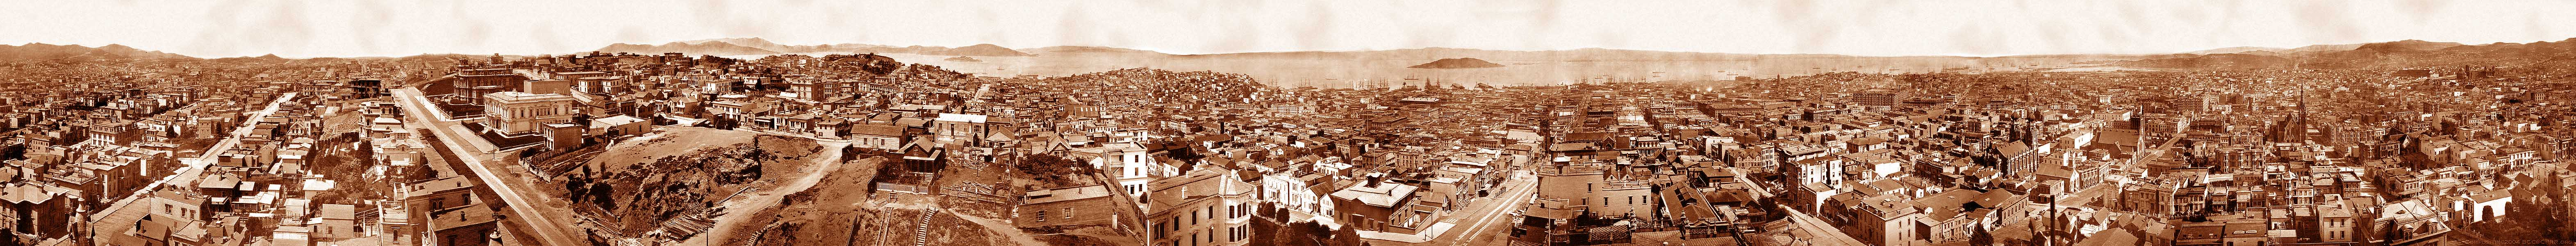 Panorama of San Francisco, Eadweard Muybridge, 197